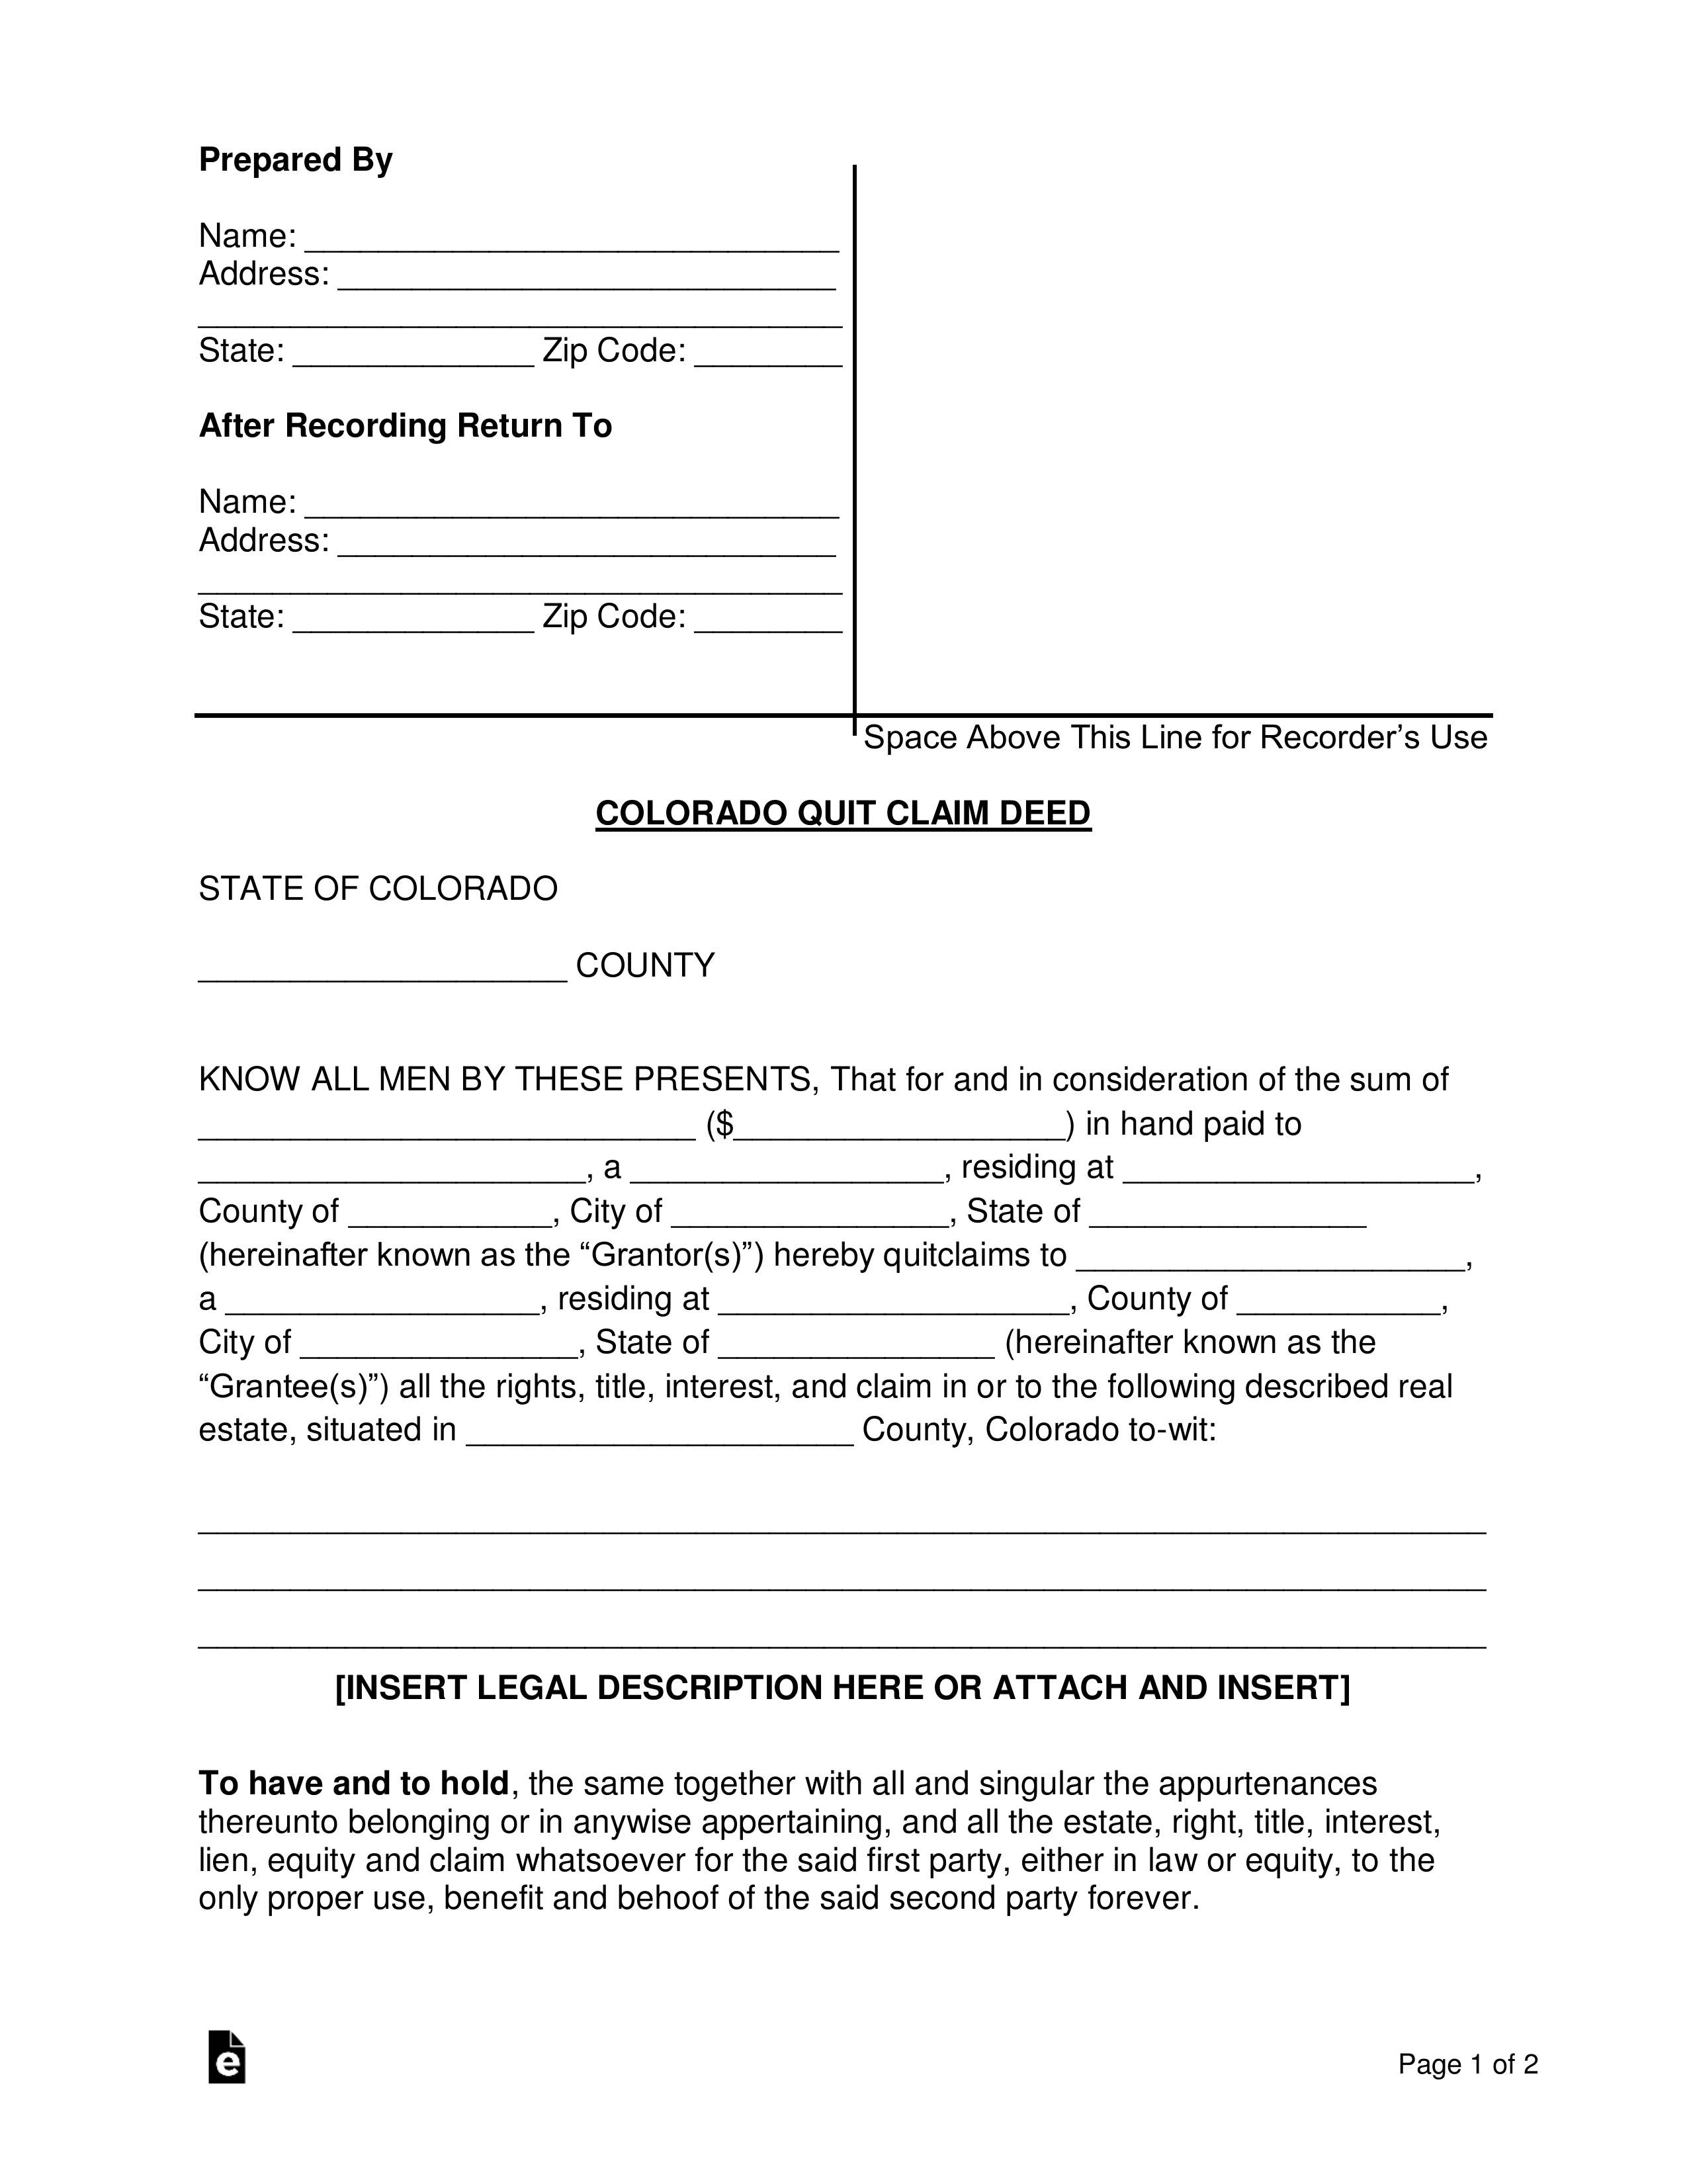 quick claim deed form free download  Free Colorado Quit Claim Deed Form - Word | PDF | eForms ...